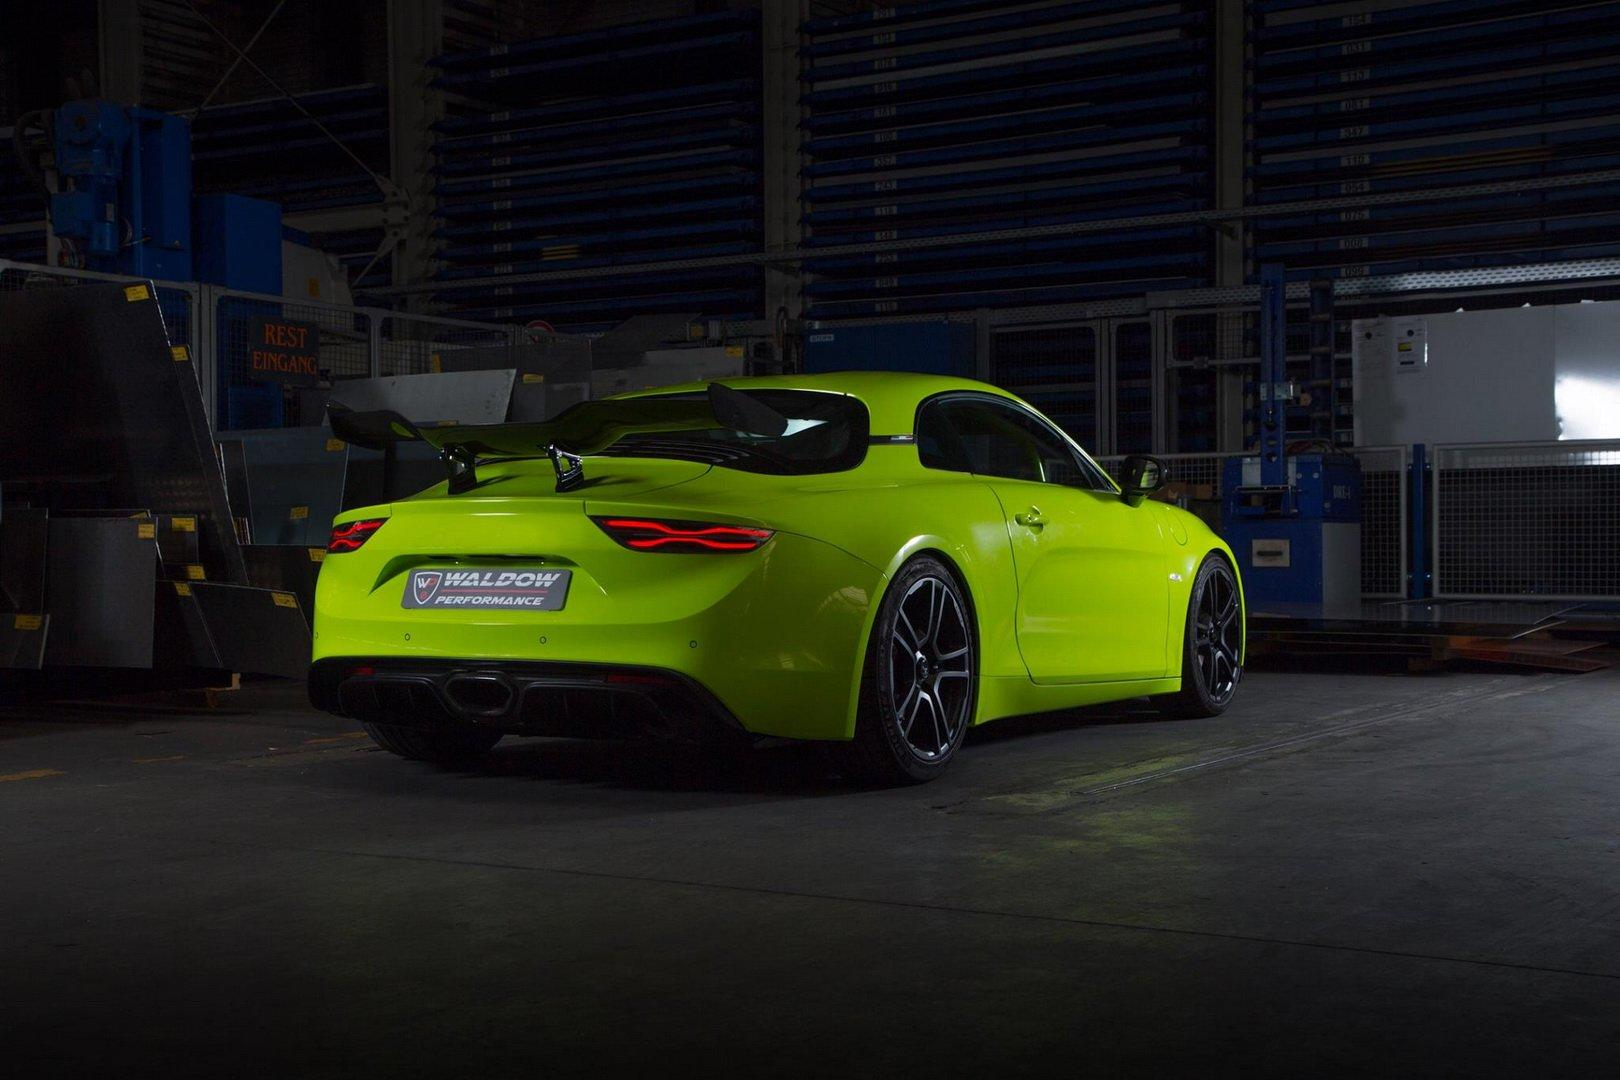 Alpine A110 de la Waldow Performance - Alpine A110 de la Waldow Performance